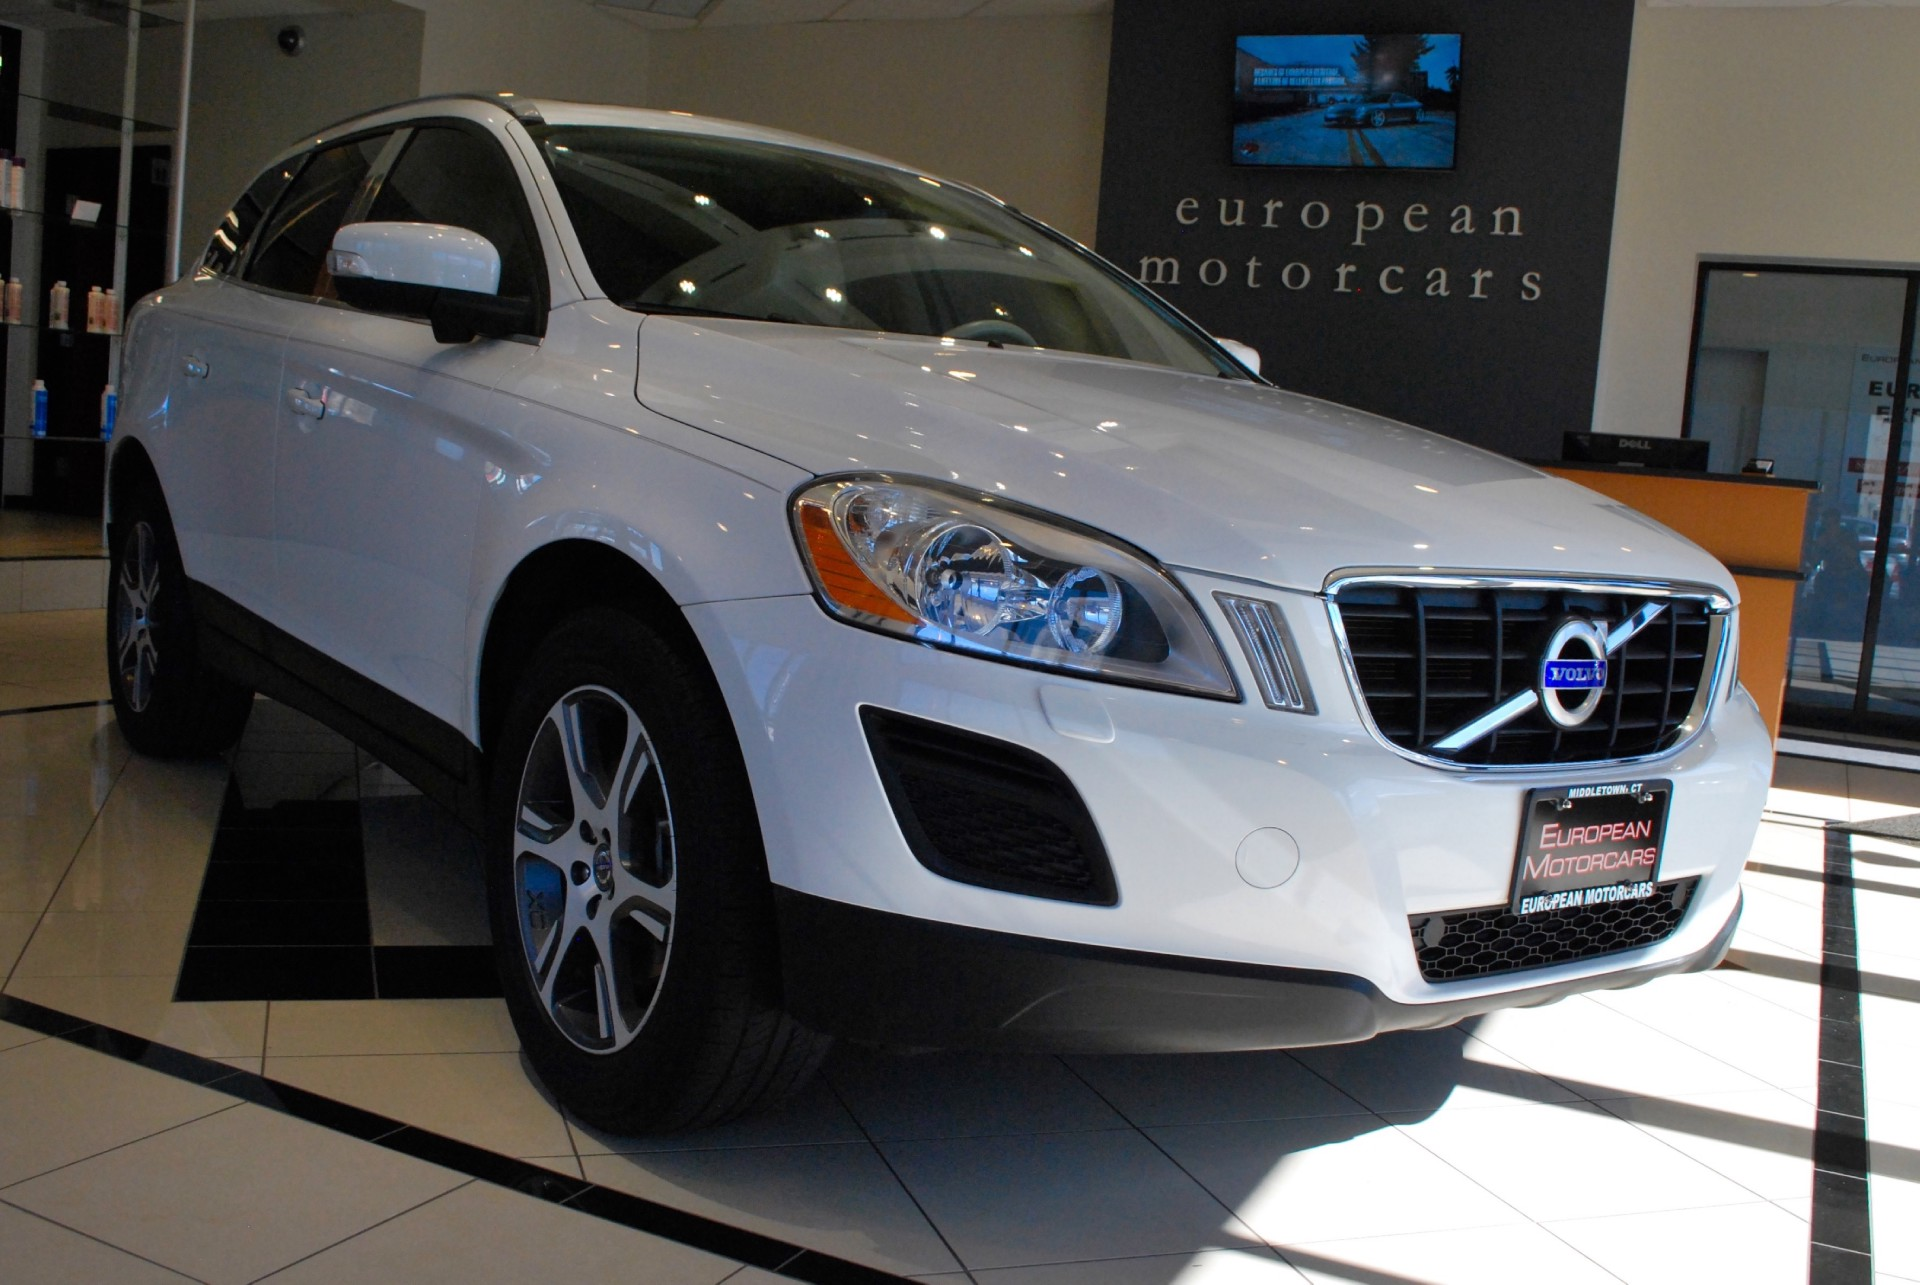 used volvo xc60 for sale hartford ct page 2 cargurus. Black Bedroom Furniture Sets. Home Design Ideas